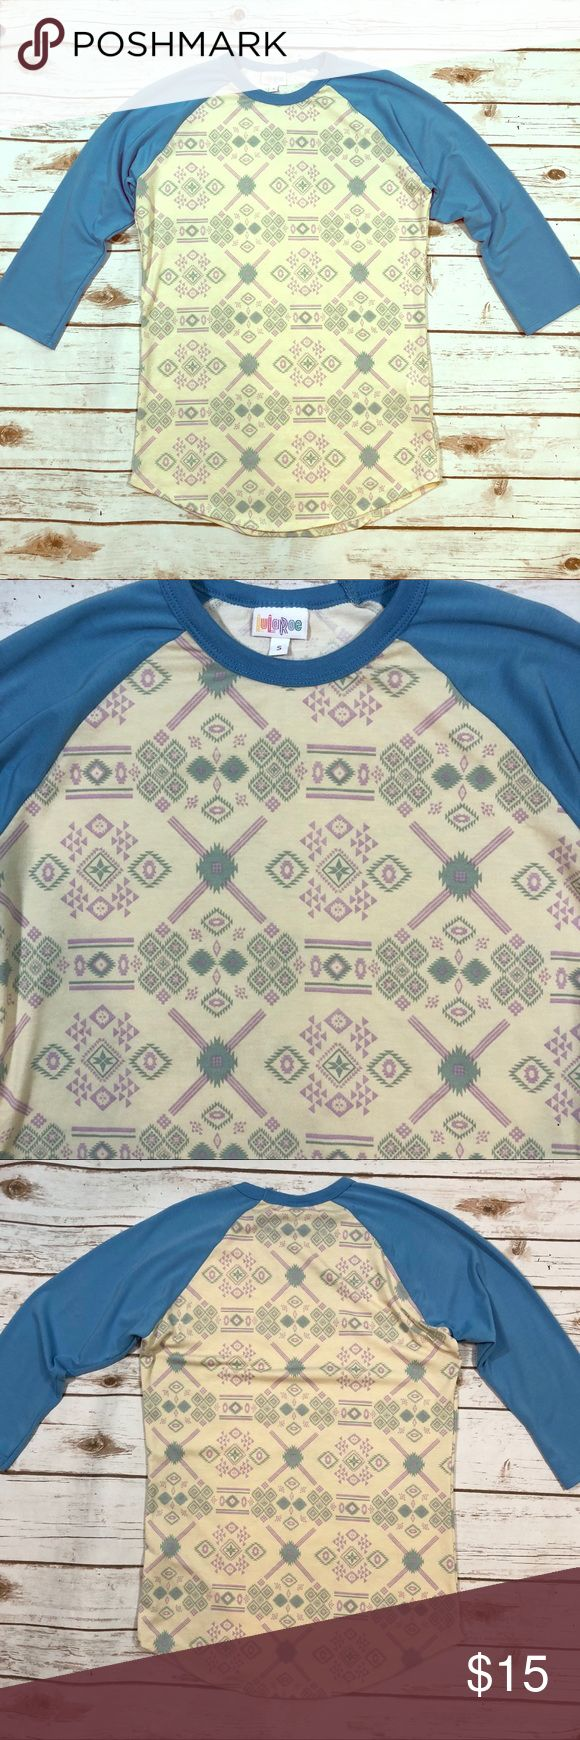 Lularoe Aztec Print Randy - Small LuLaRoe Womens Small Randy Raglan Baseball Tee Shirt Ivory Blue Aztec Print  Labeled a size Small.   Very good preowned condition. Slight pilling under arms. Otherwise, no flaws to note. LuLaRoe Tops